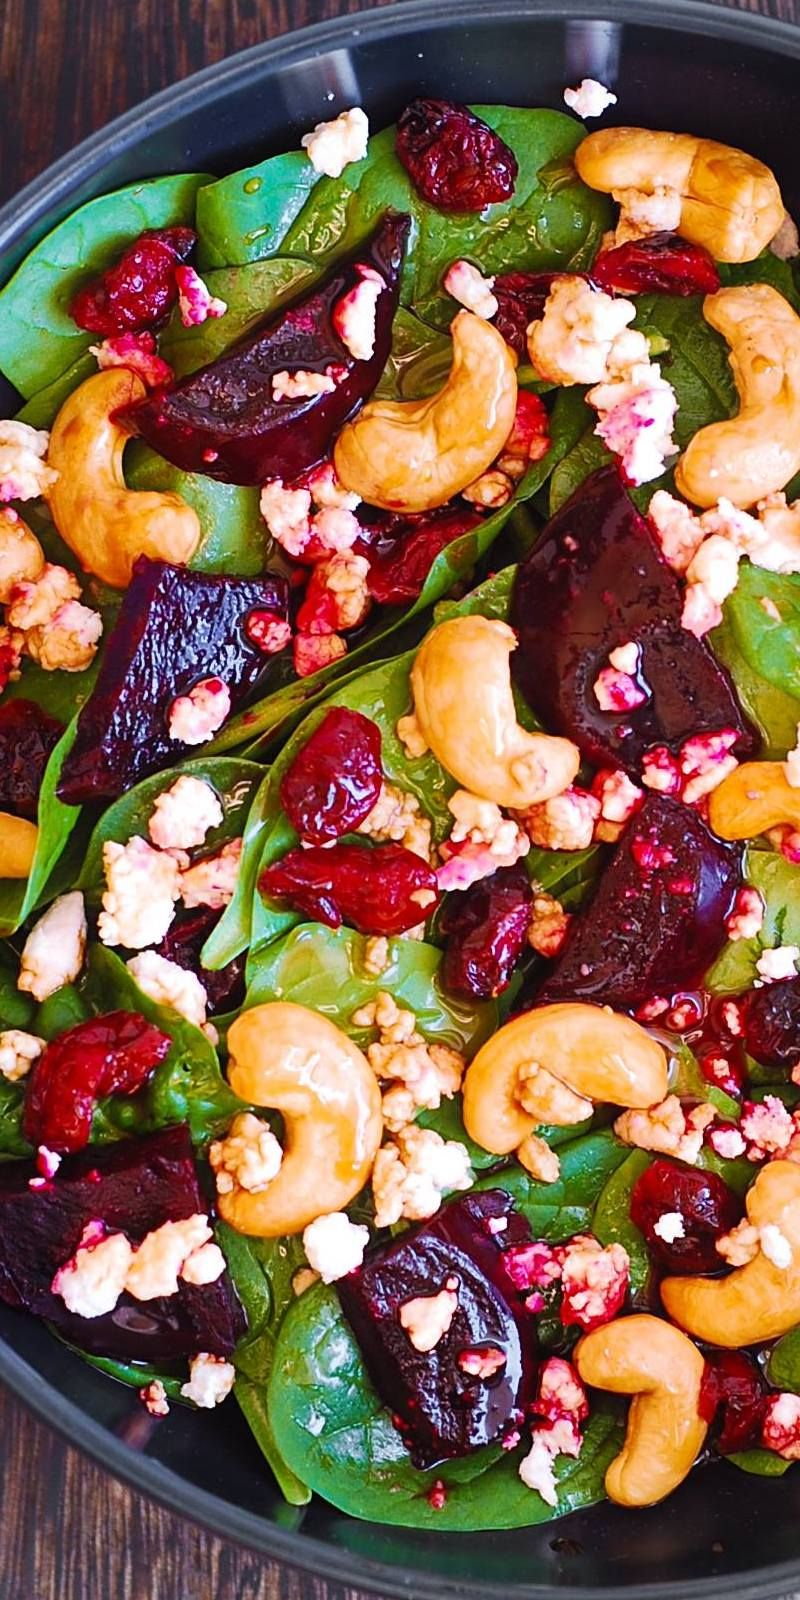 Beet Salad with Spinach, Cashews, Cranberries, and